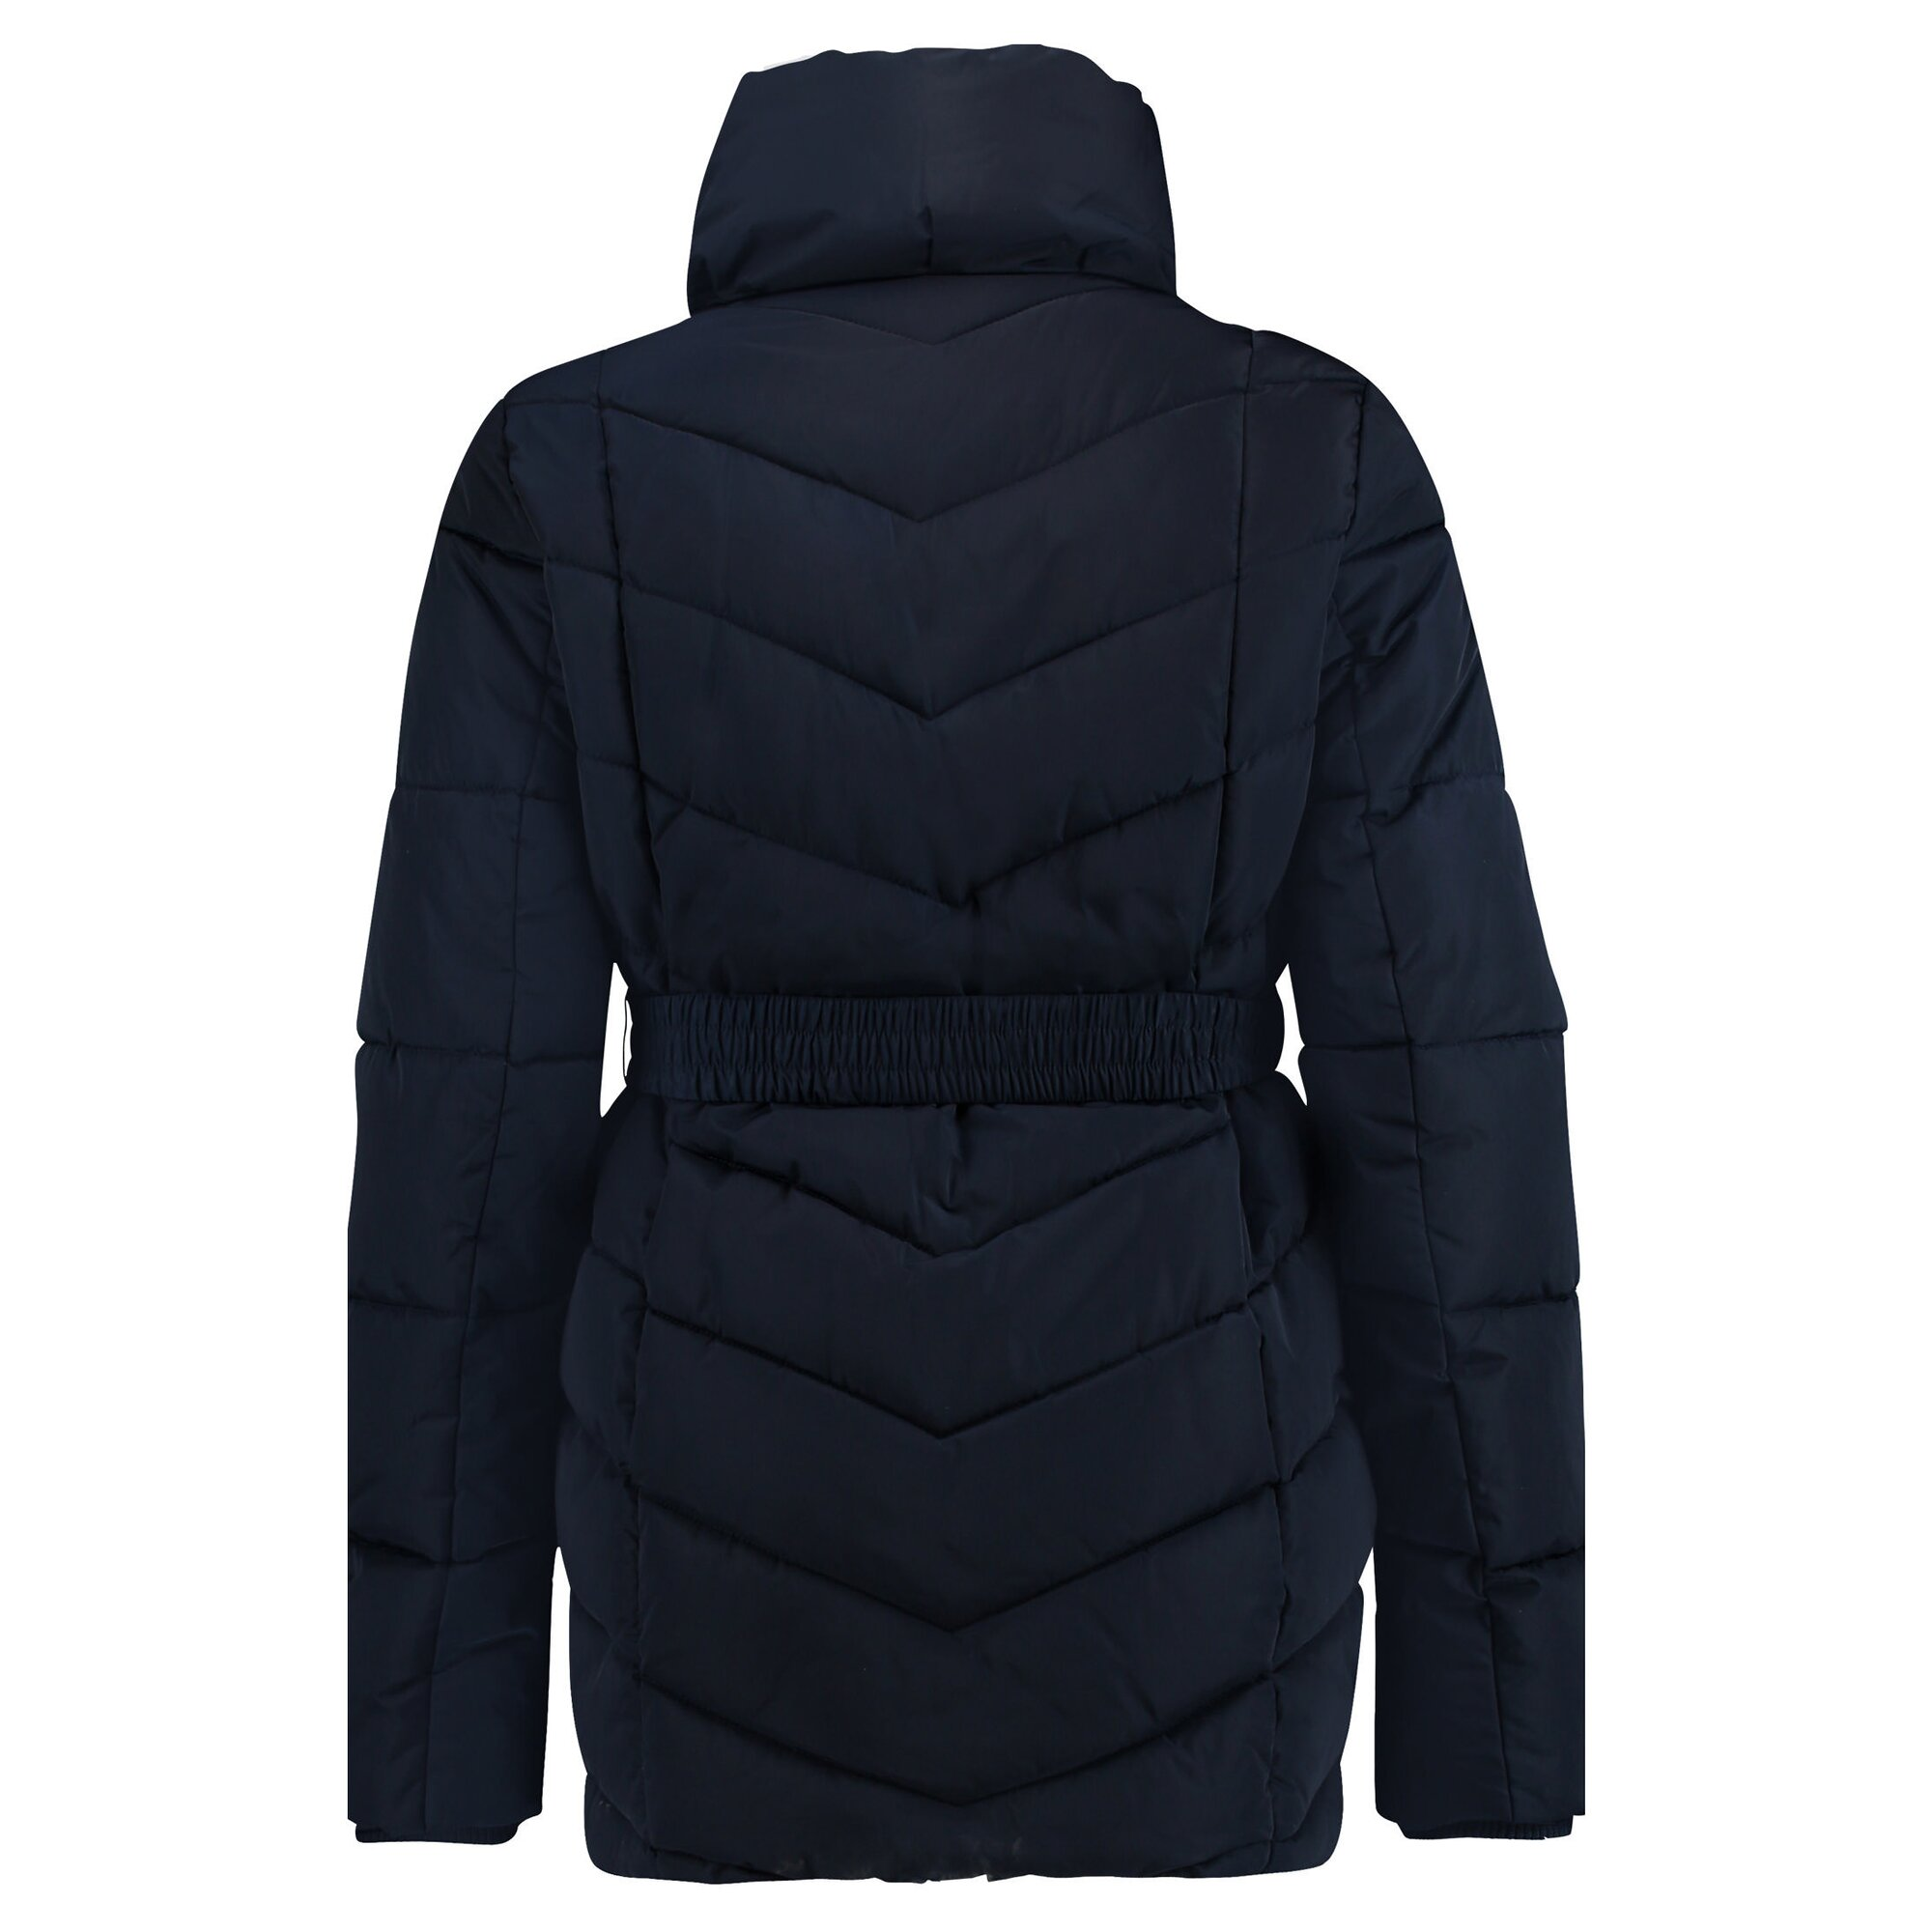 noppies-umstandsjacke-winter-lois